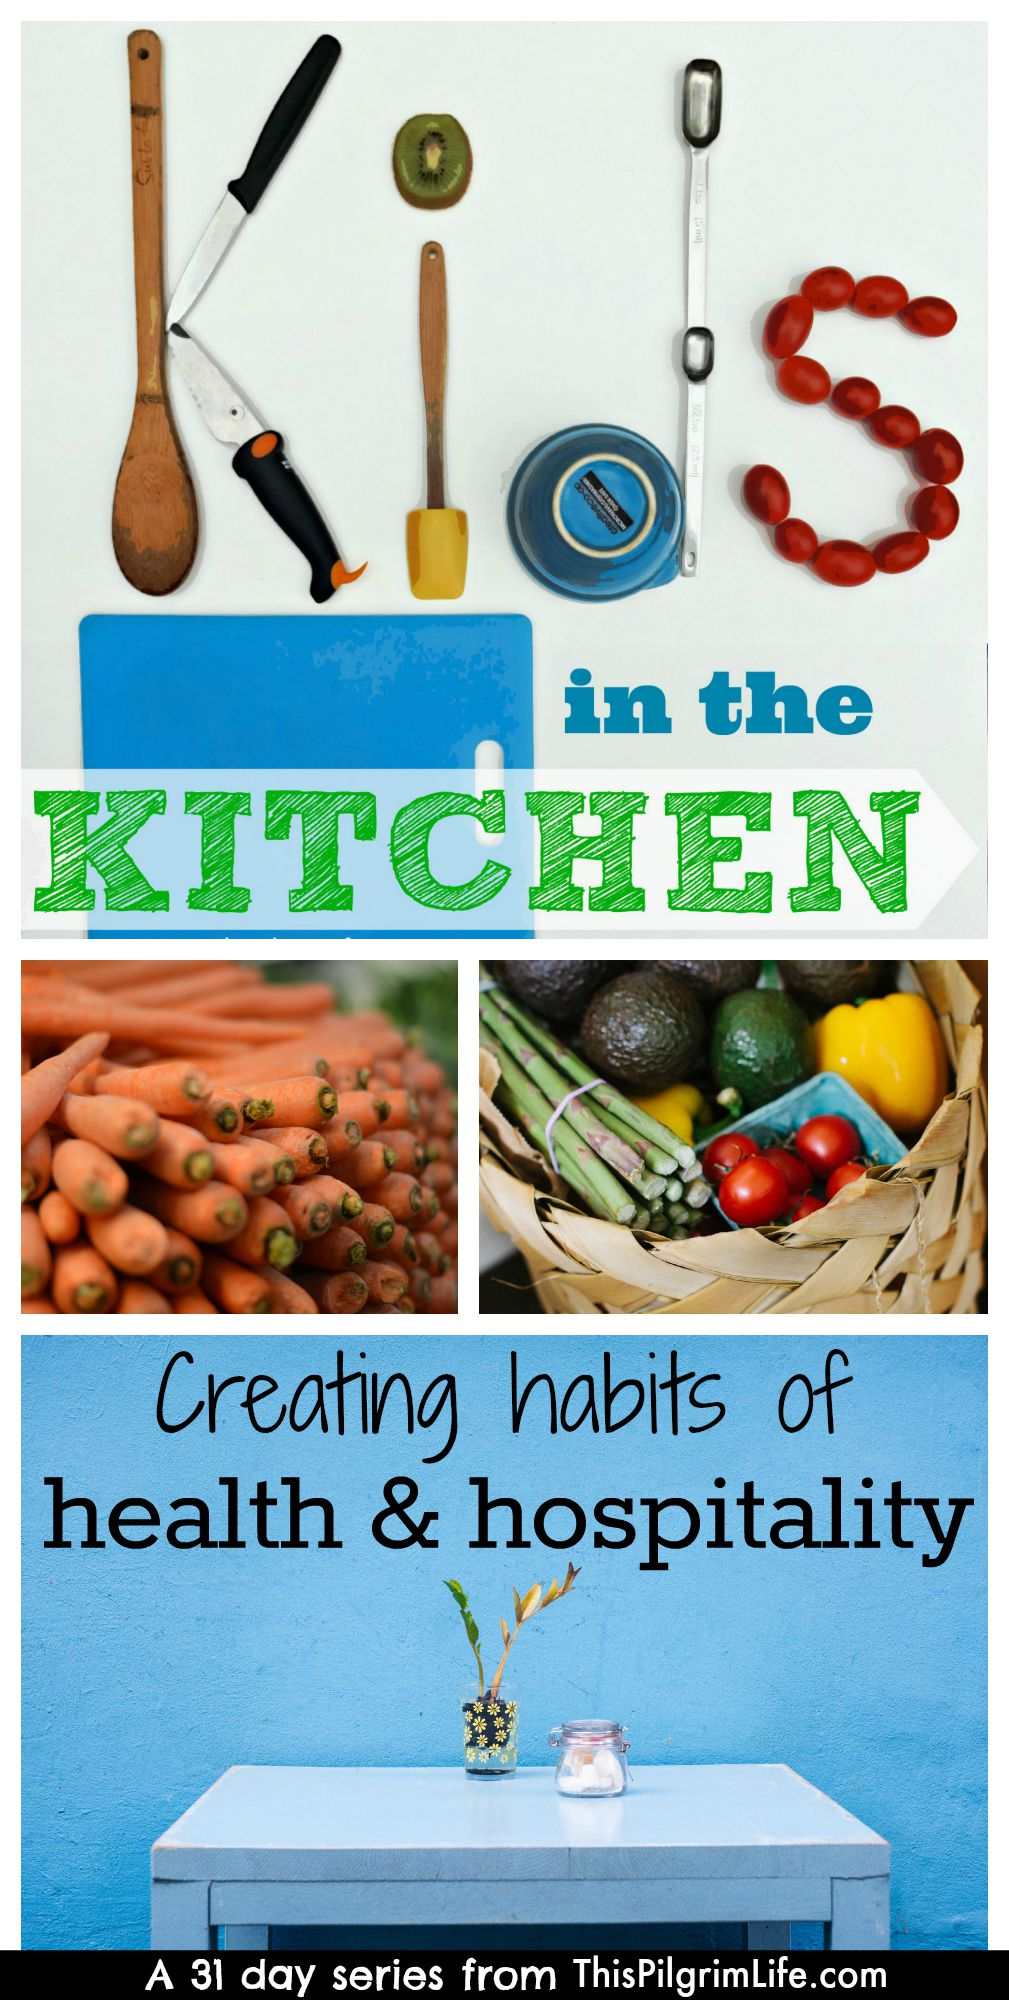 Bring kids into the kitchen is so much more than baking cookies! It's learning, relationship building, and a great way to create habits of health and hospitality in your kids!